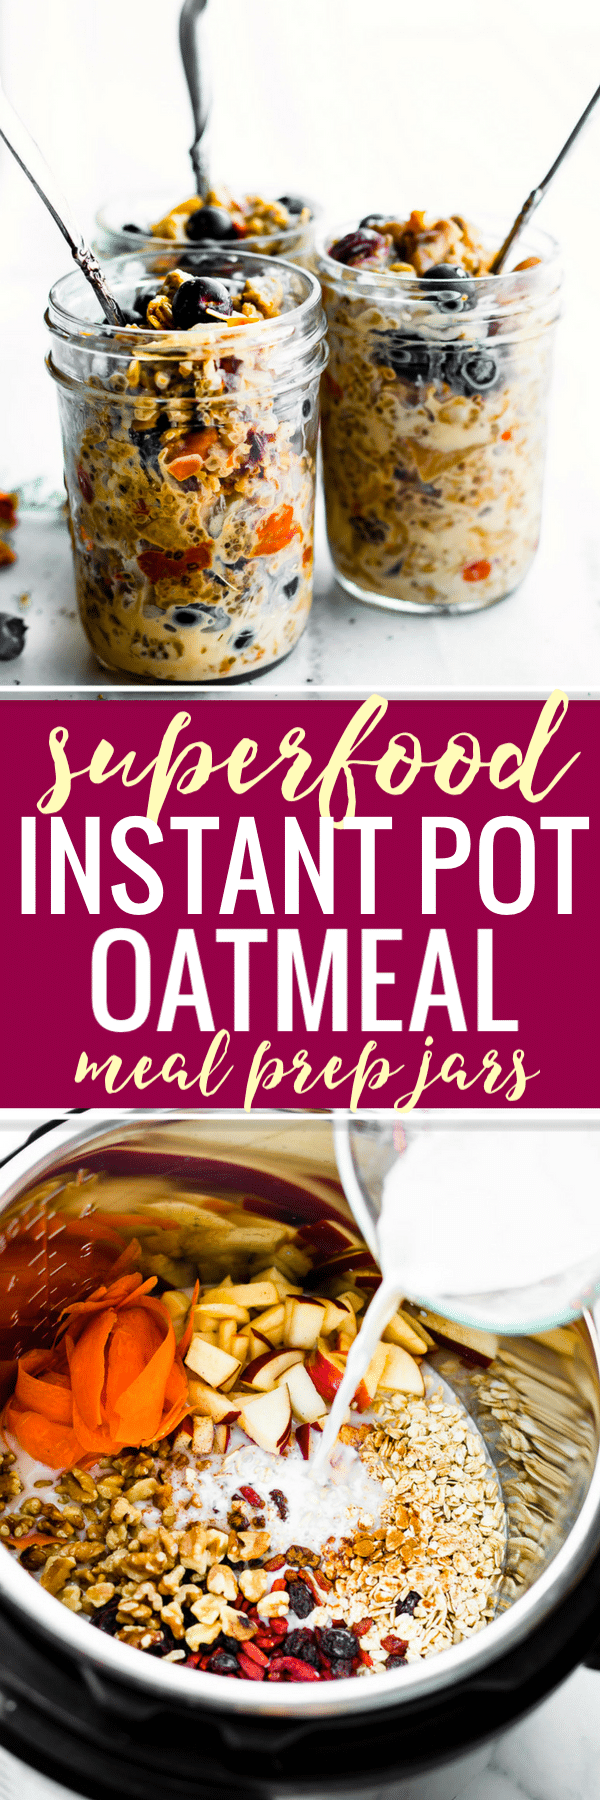 Superfood Instant Pot Oatmeal in a Jar! A healthy breakfast meal prep recipe or breakfast to-go. This electric pressure cooker oatmeal recipe is filled with superfoods; gluten free rolled oats, apples, walnuts, flaxseed, goji berries. Wholesome breakfast made in a multi-cooker, slow cooker, or stove top. Vegan option. #instantpot #oatmeal #glutenfree #mealprep